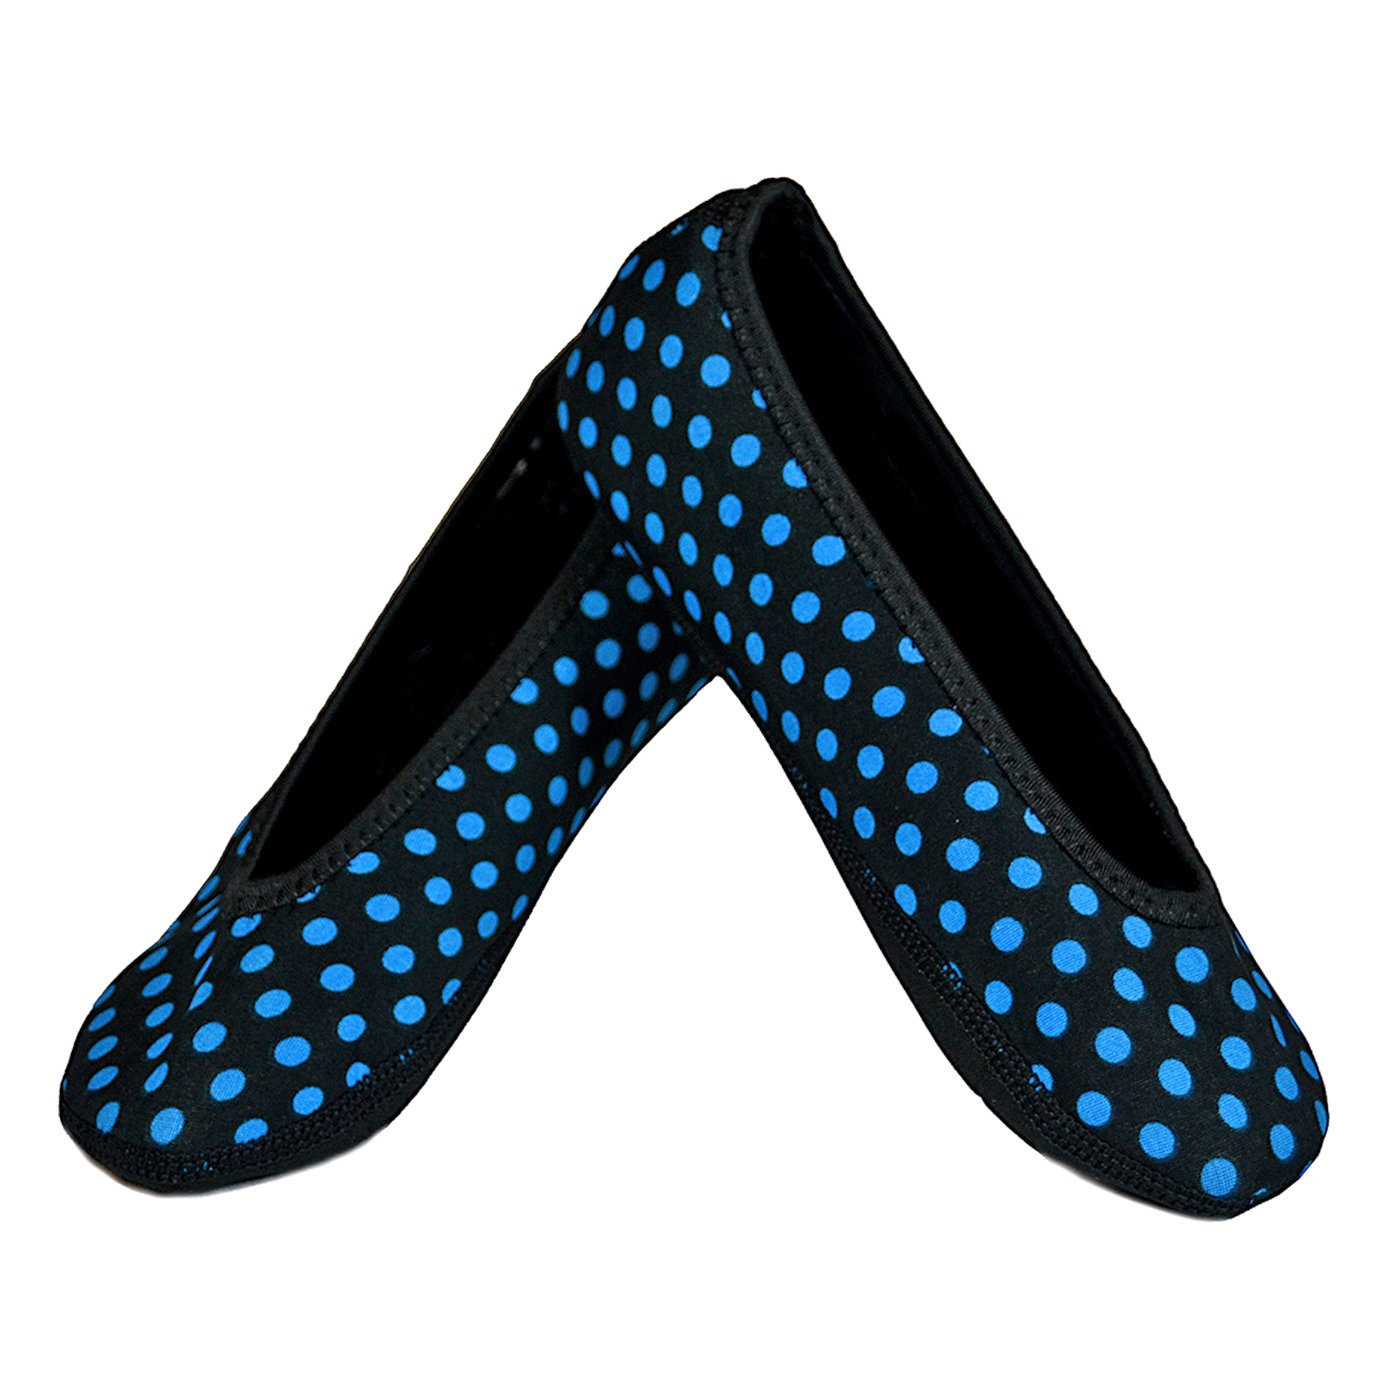 Nufoot Ballet Flats Women's Shoes Best Foldable & Flexible Flats Slipper Socks Travel Slippers & Exercise Shoes Dance Shoes Yoga Socks House Shoes Indoor Slippers Black with Blue Polka Dots Medium